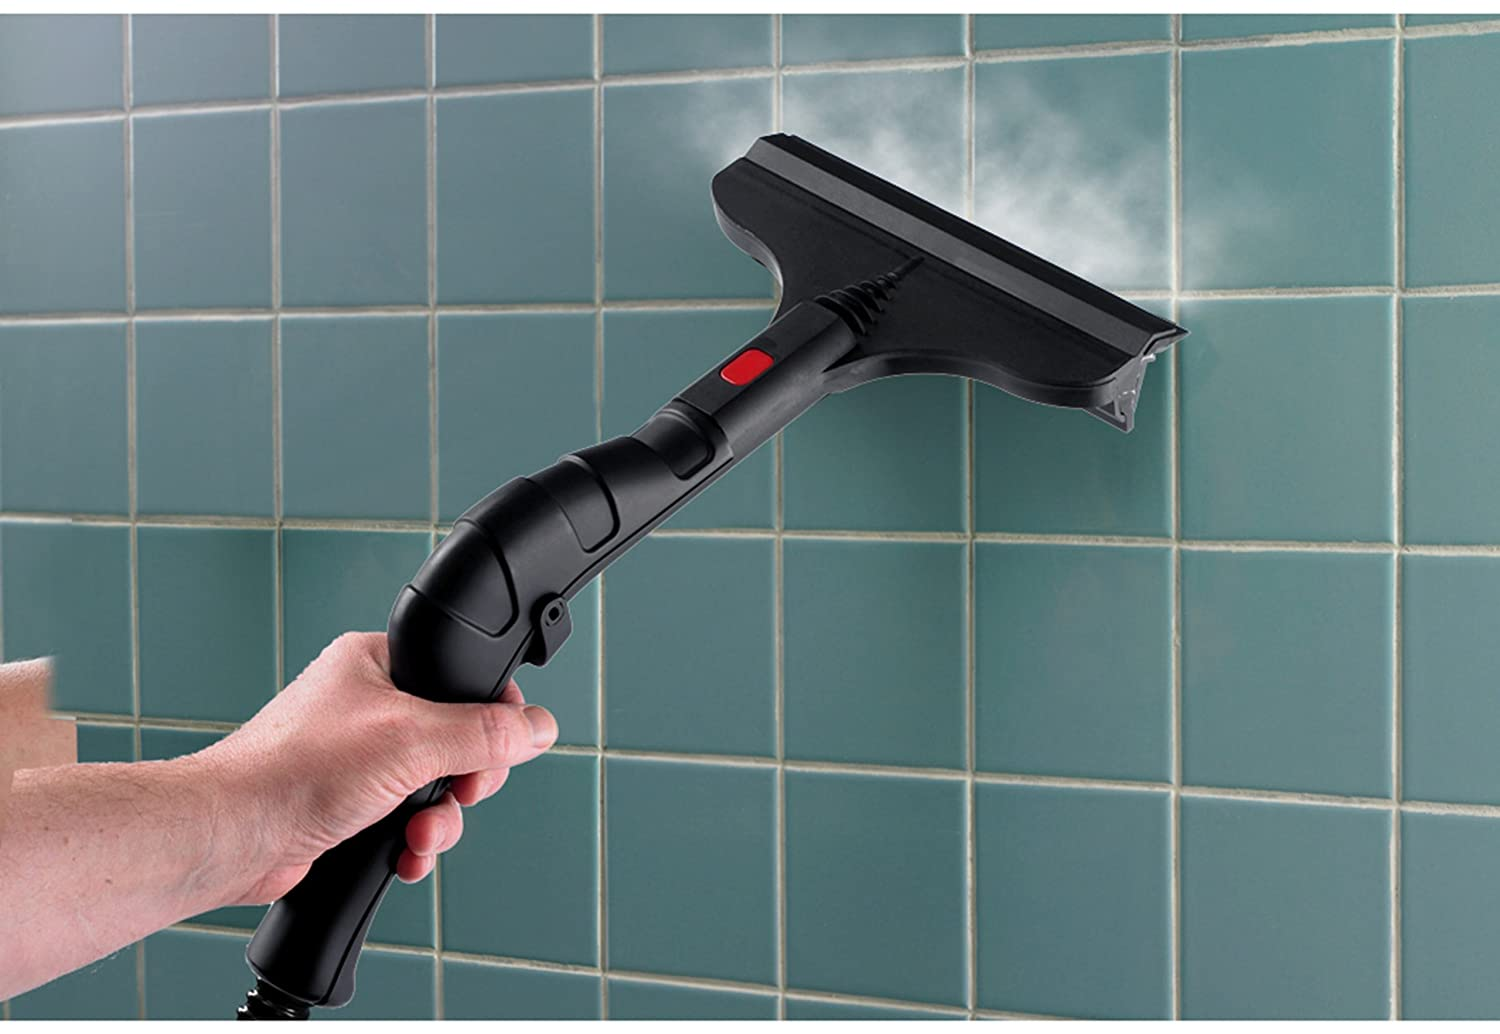 steam cleaner for bathroom tiles wagner 915 0282014 1 500 watt on demand power steamer 24280